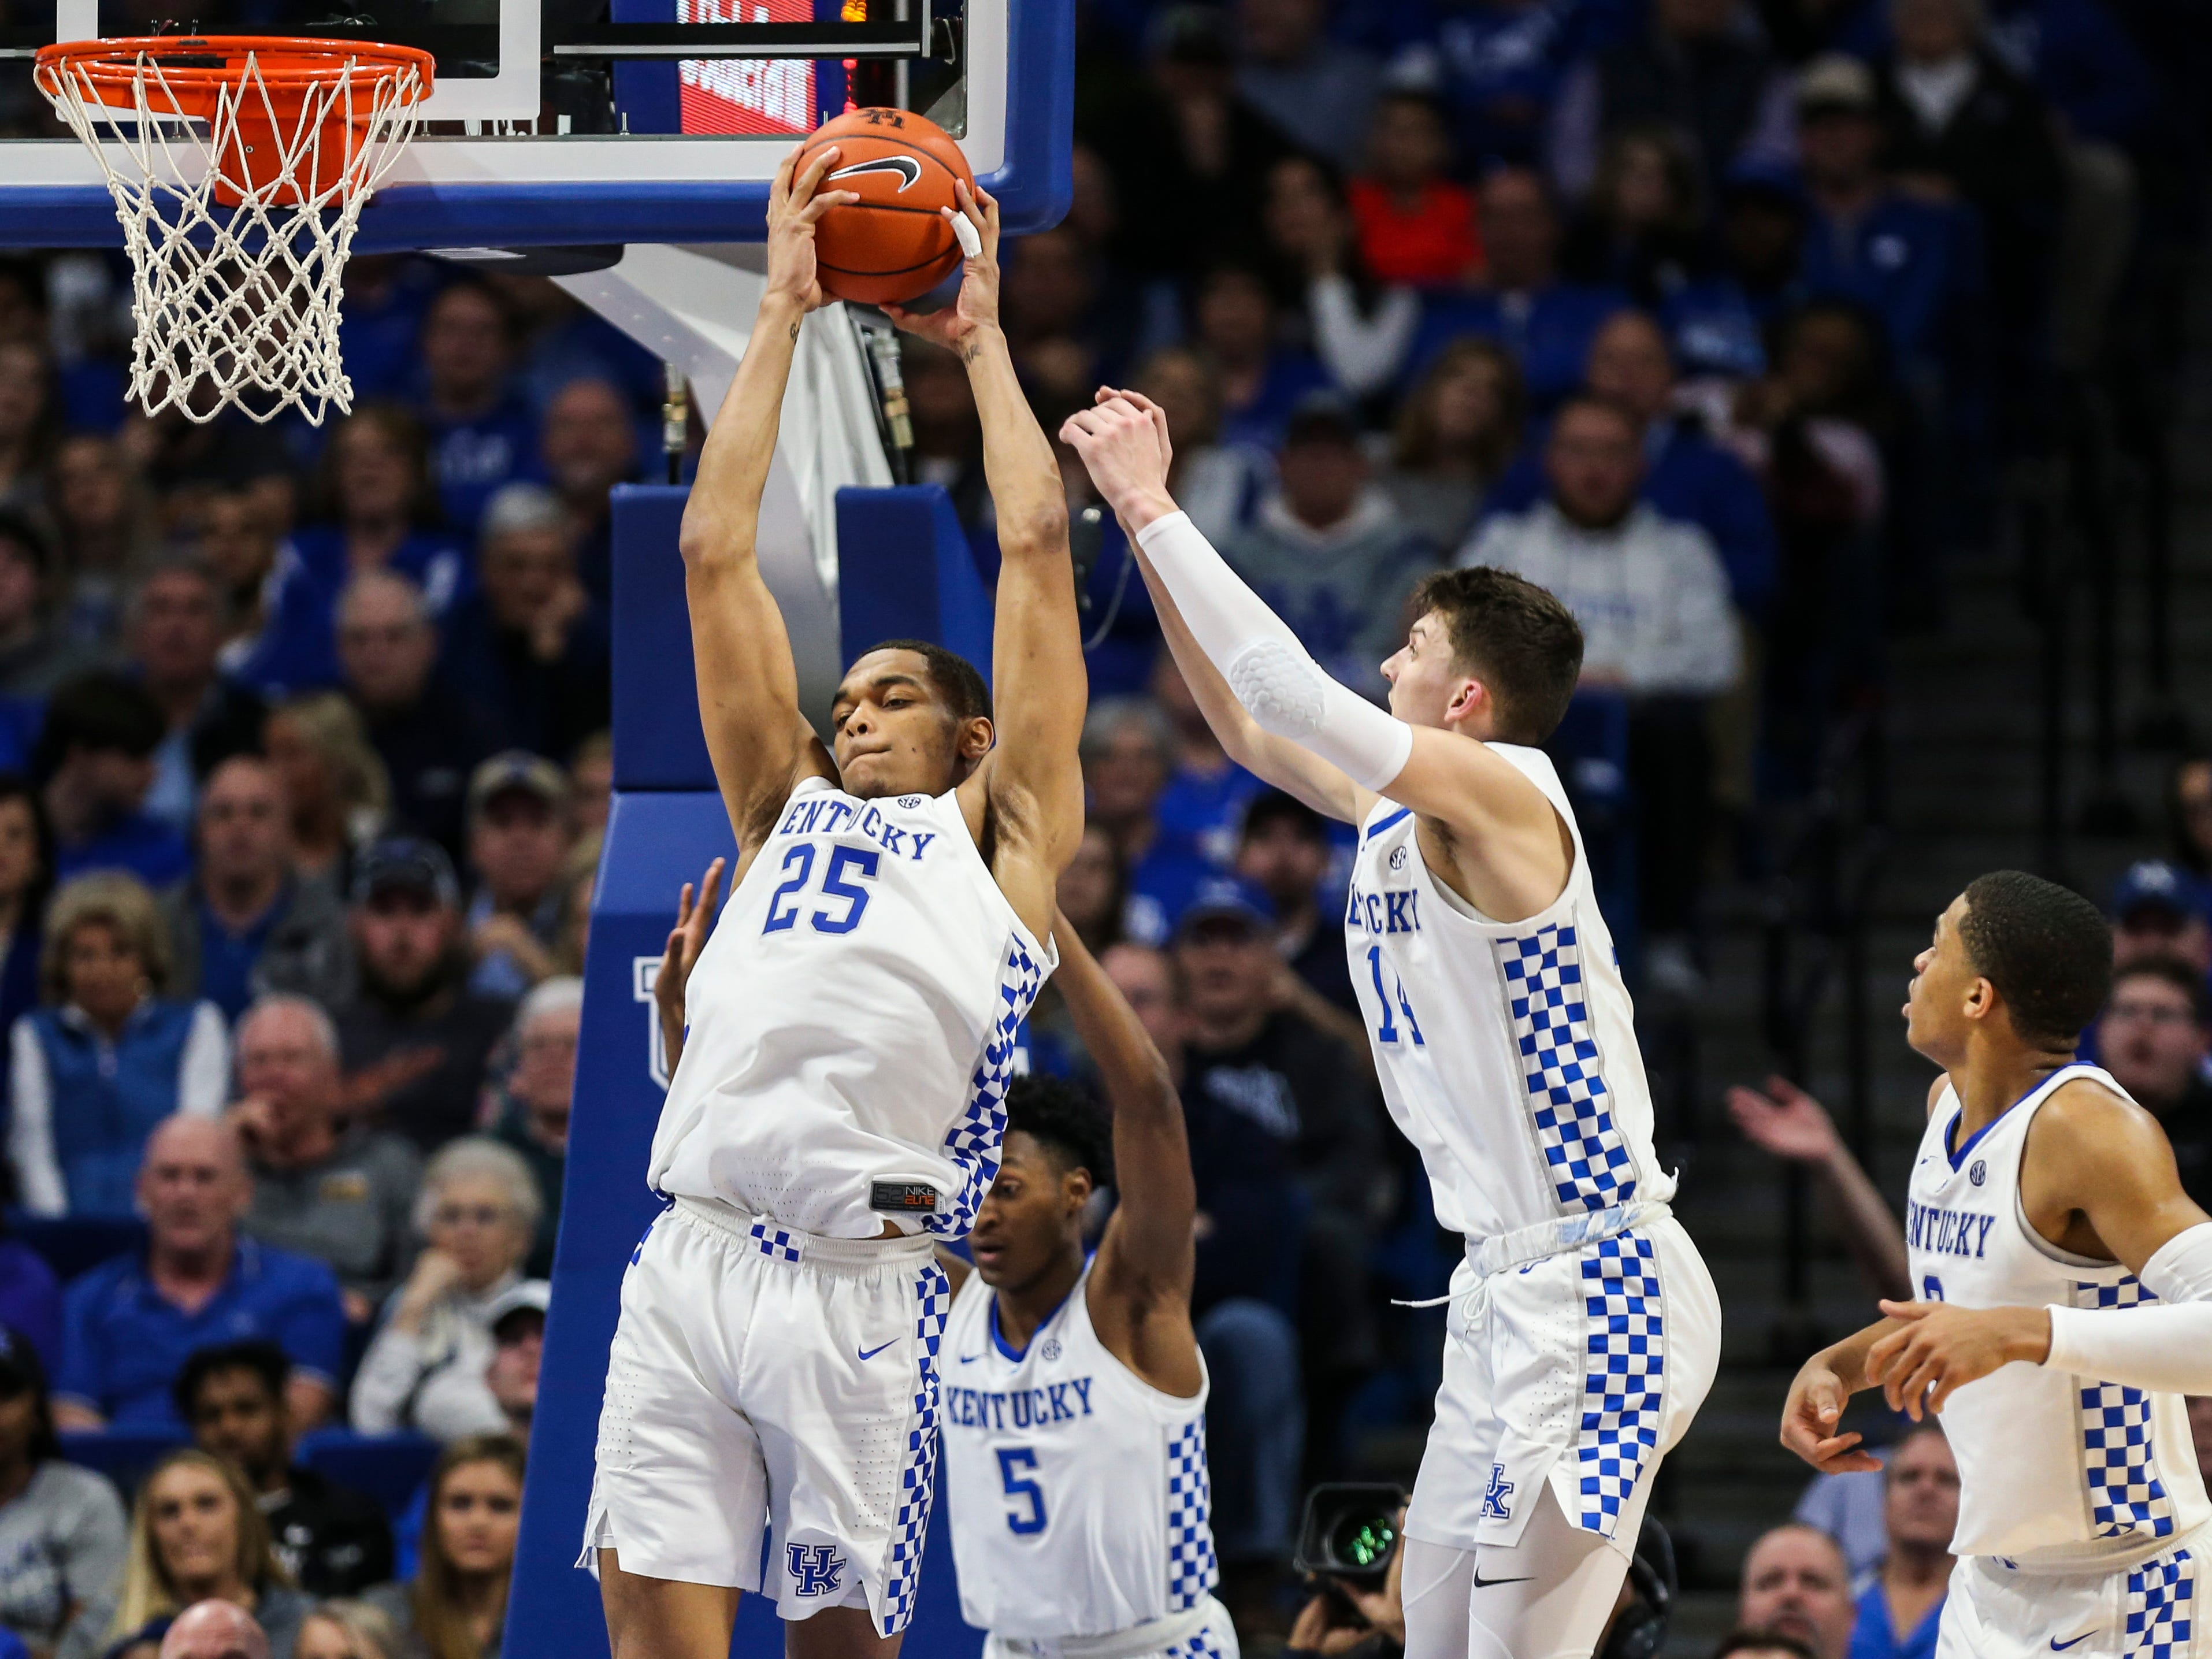 Kentucky's PJ Washington grabs one of his five rebounds as the Wildcats cruised past the Gamecocks 76-48. UK had 50 rebounds to South Carolina's 27. Feb. 5, 2019